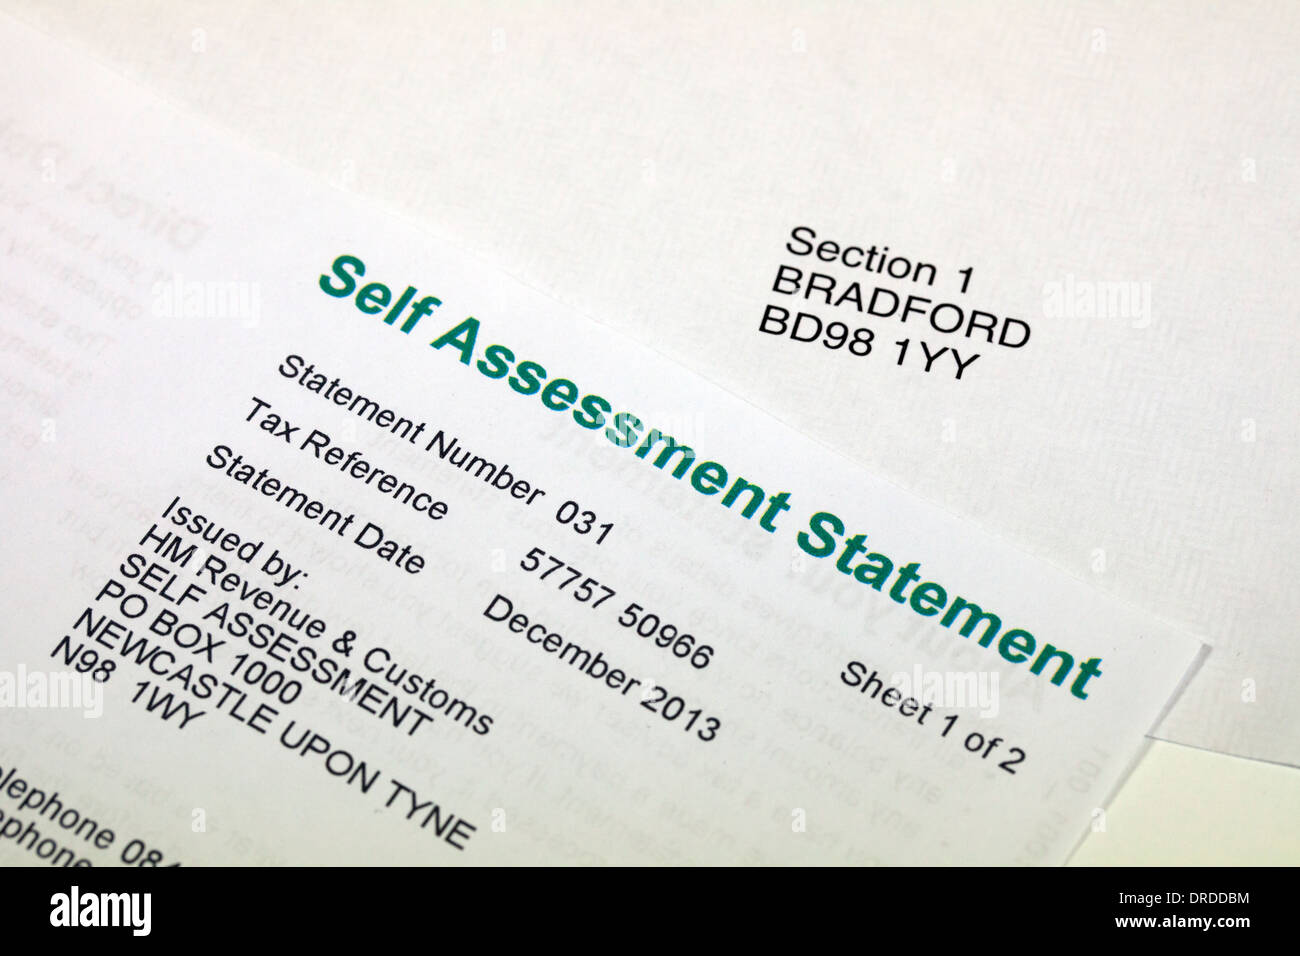 Income Tax Self assessment statement - Stock Image